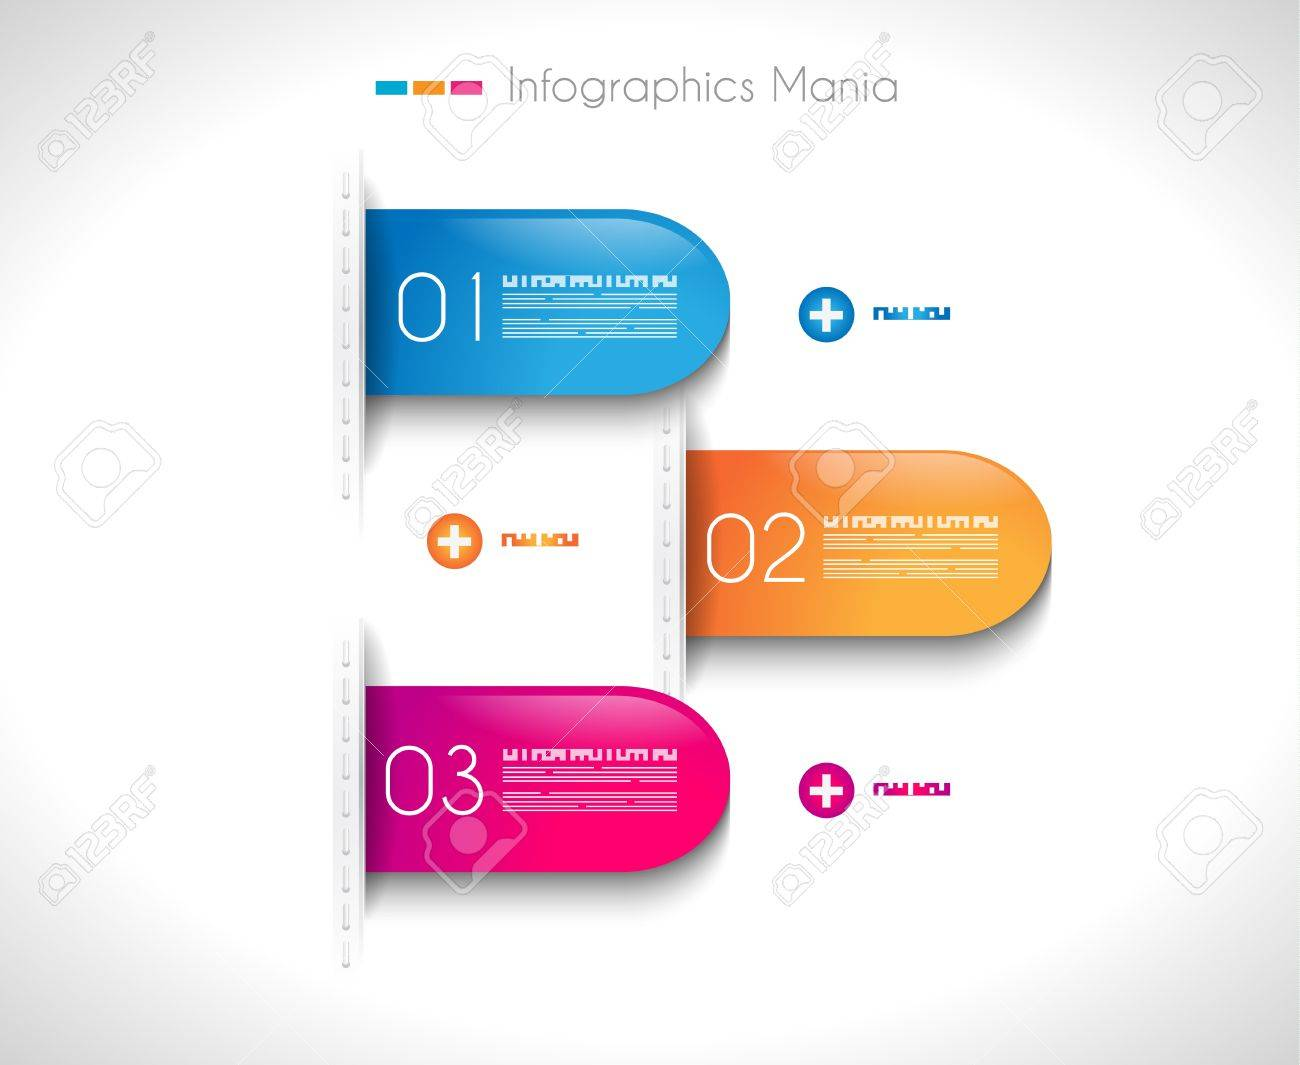 Infographic Design Template With Paper Tags Ideal To Display – Paper Design Template